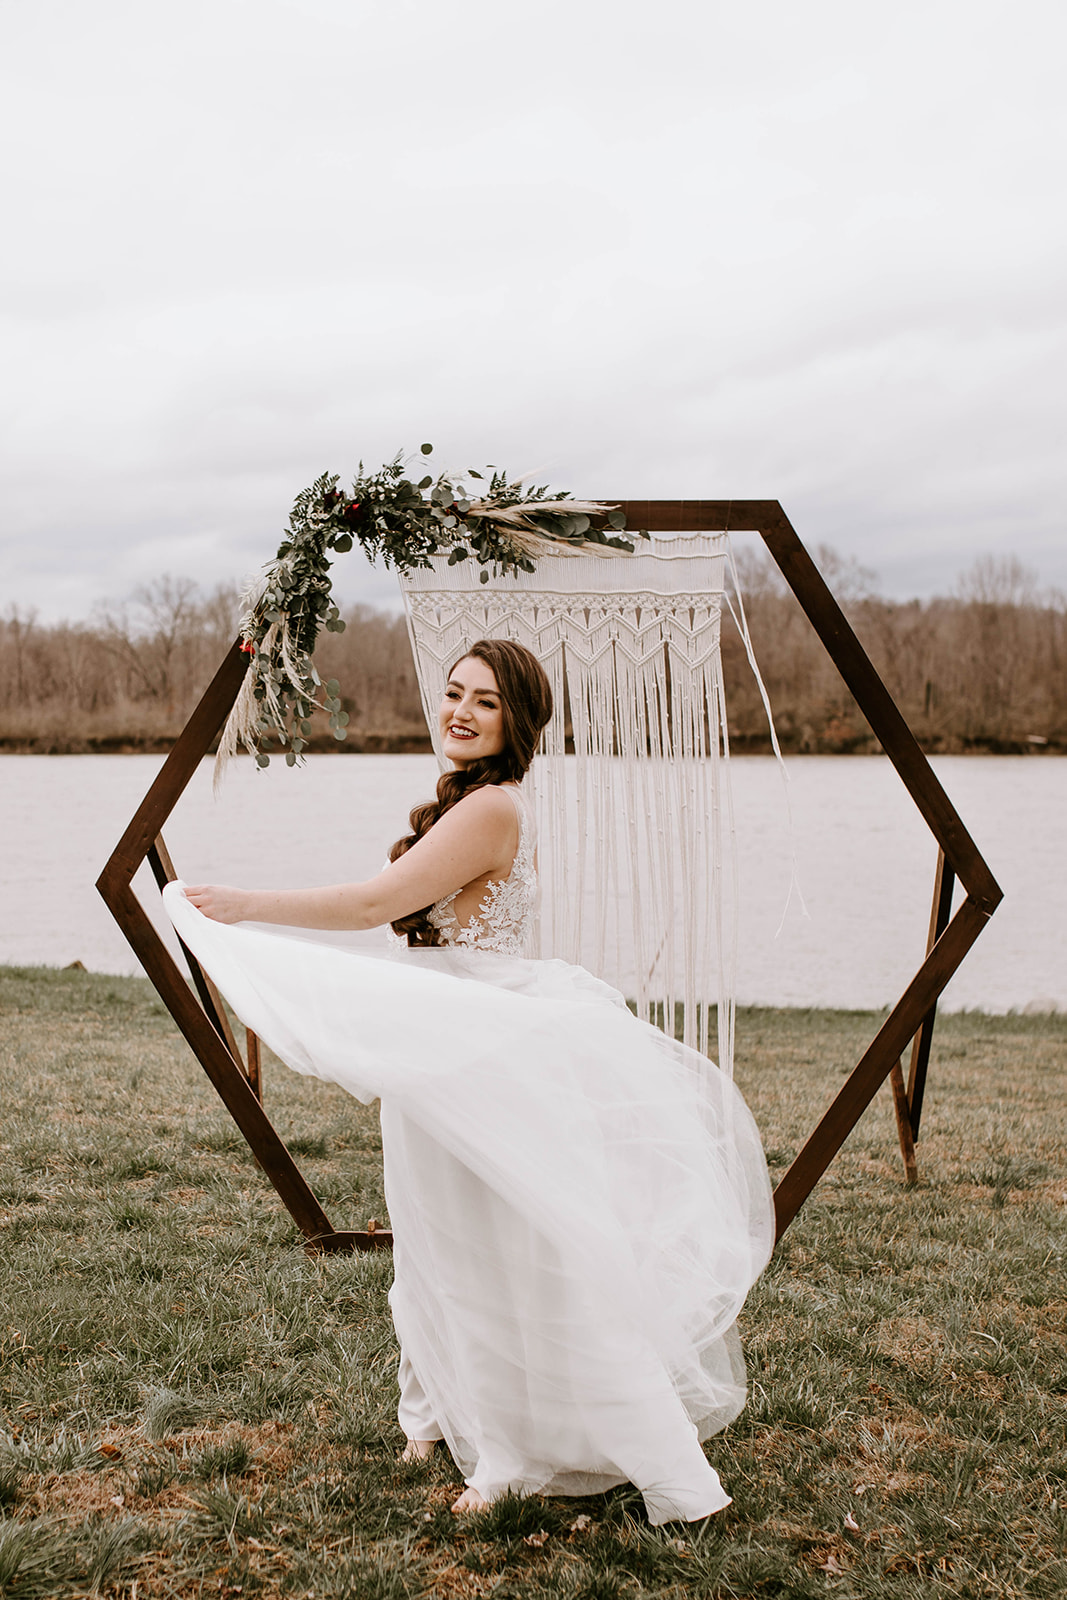 Geometric wedding backdrop: Surprise Vow Renewal by Tara Winstead Photography featured on Nashville Bride Guide